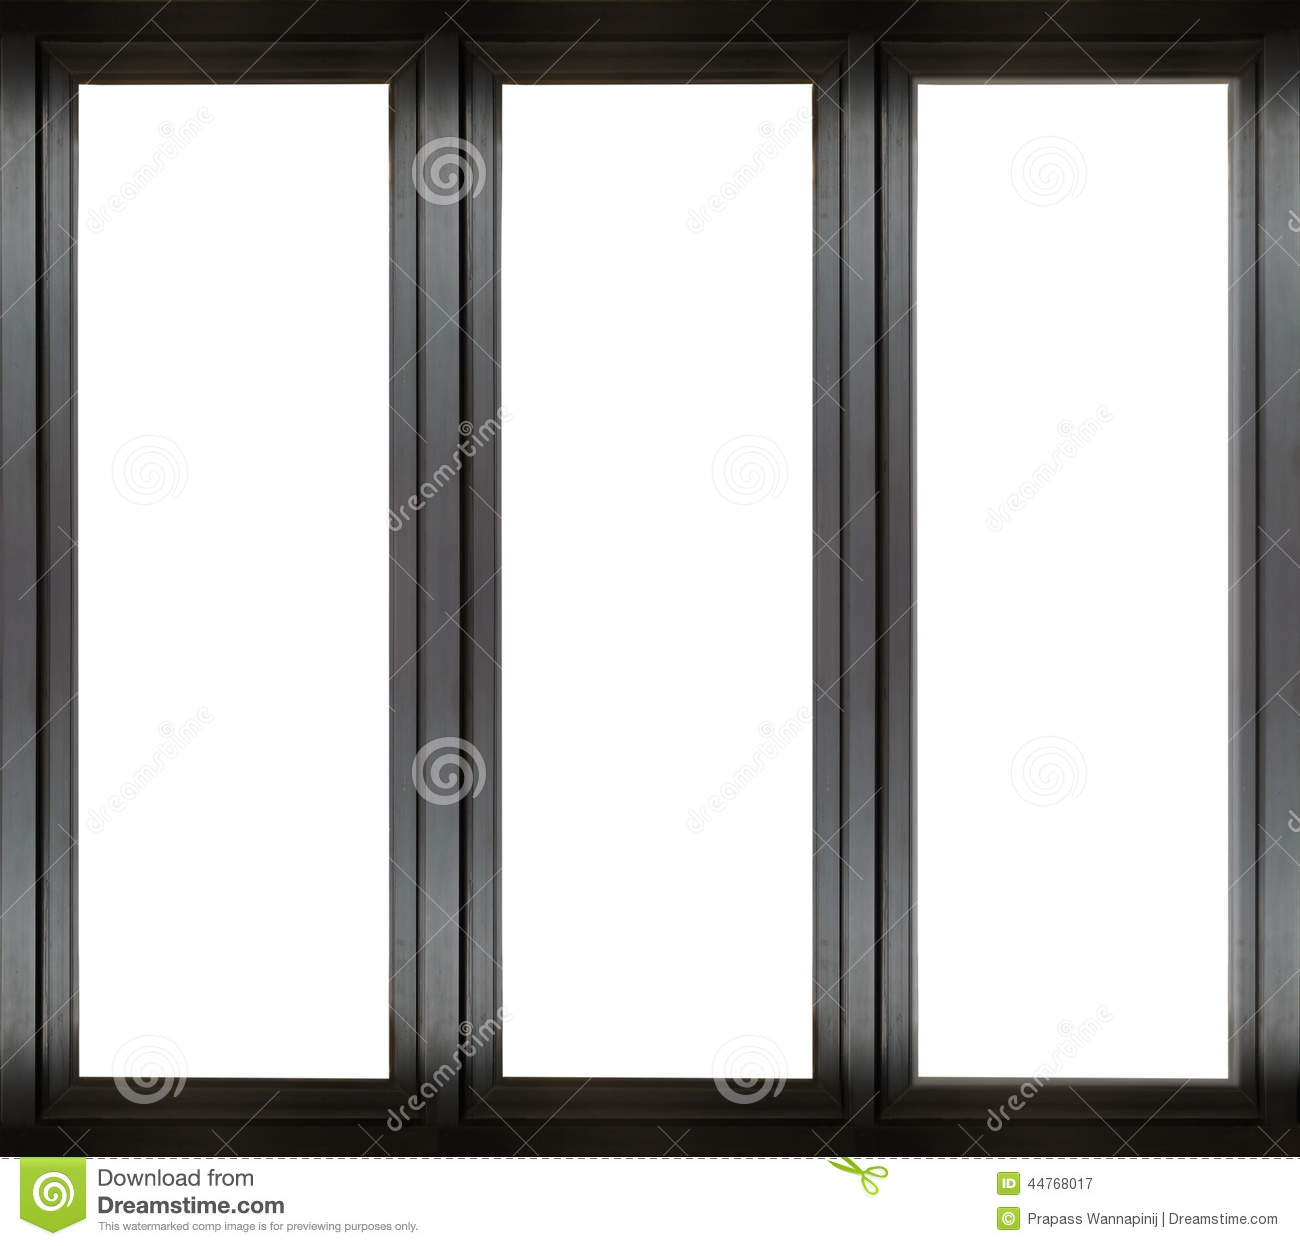 82a328 black metal window frame stock photo image 44768017 windows metal frame 121 picture - Metal Frame Windows